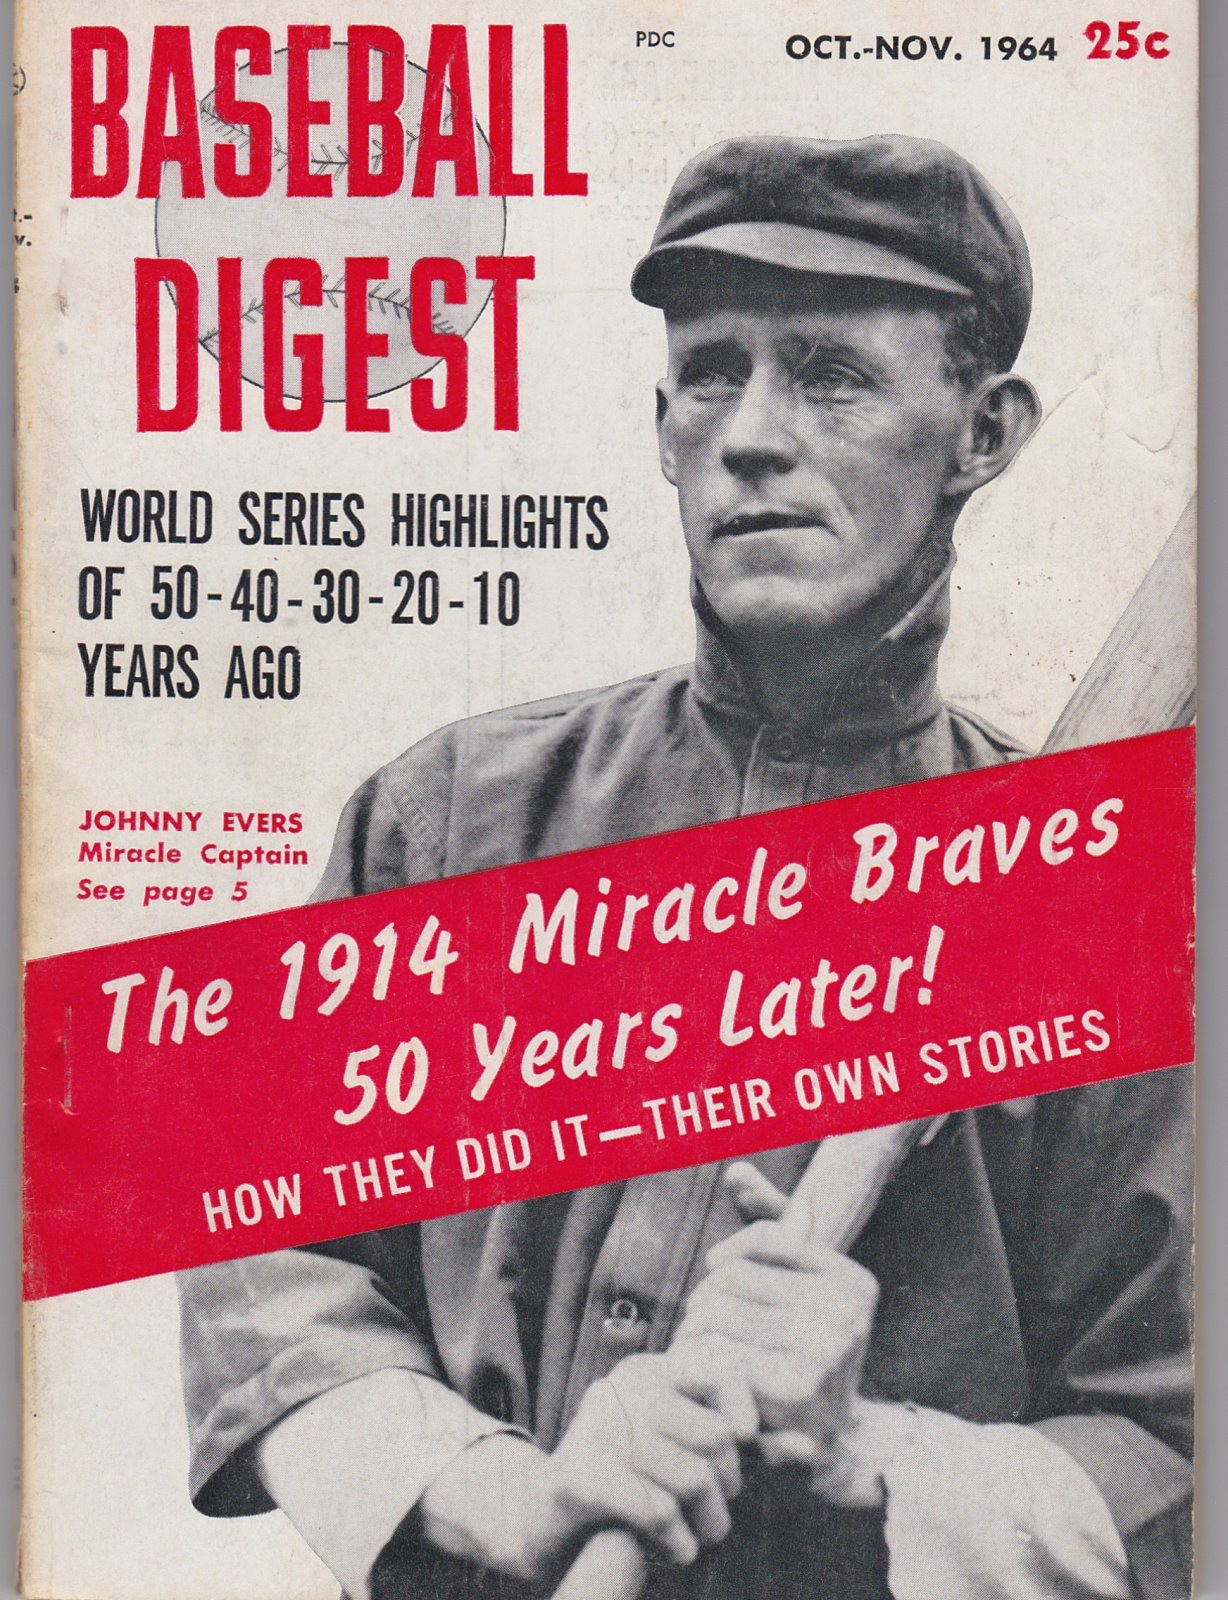 Baseball Digest Baseball's Monthly Magazine Oct-Nov, 1964